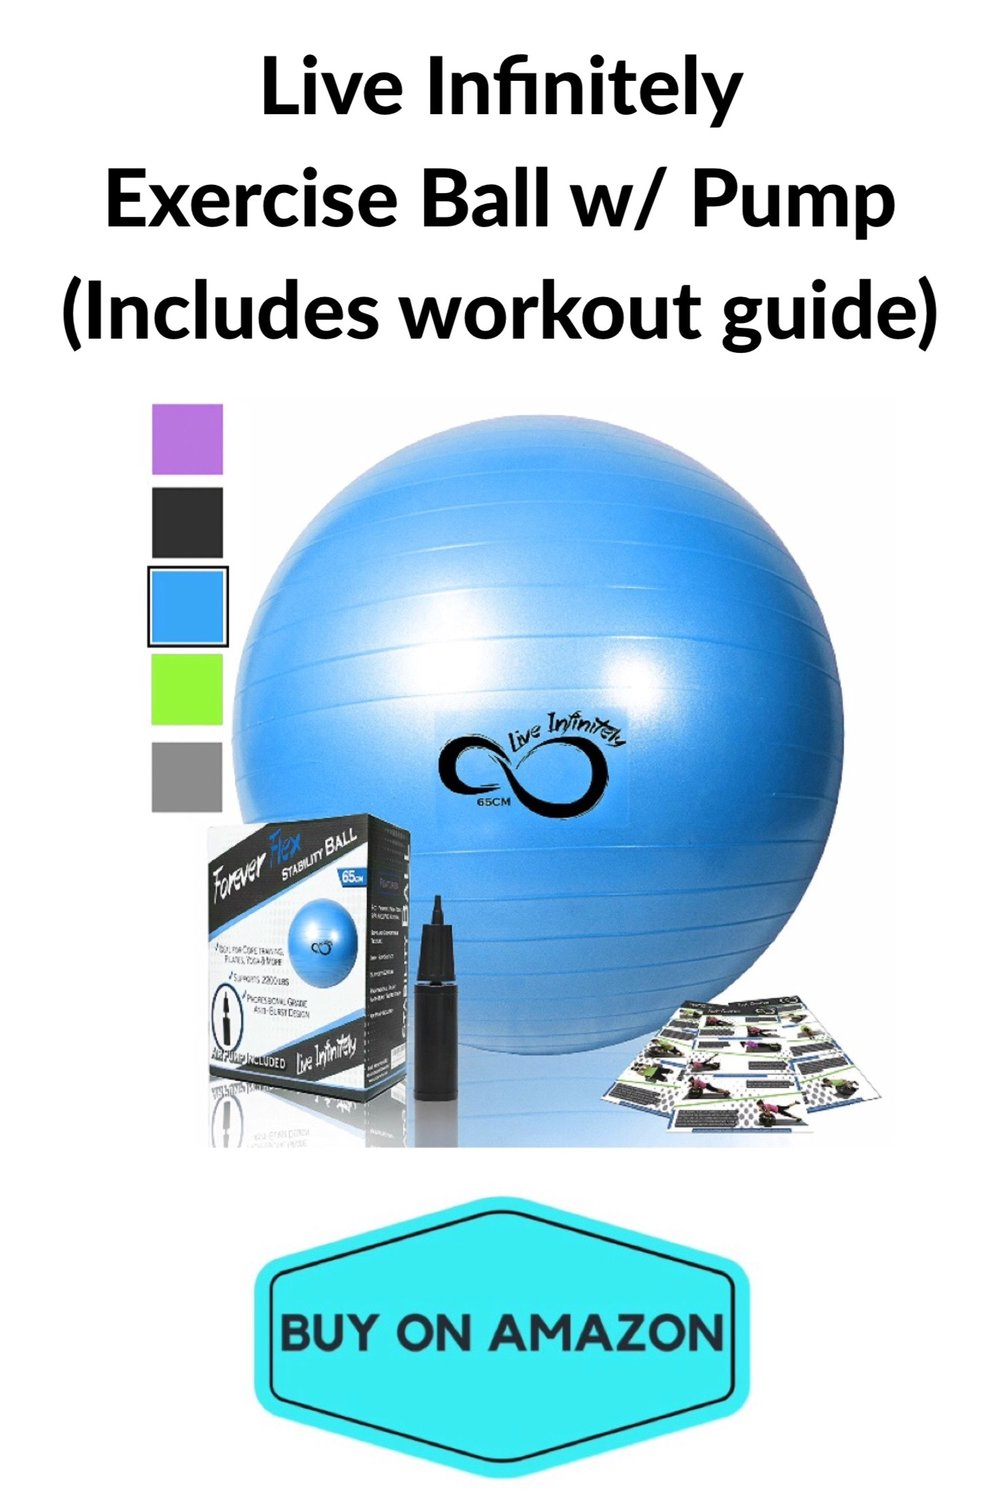 Live Infinity Exercise Ball w/ Pump and Workout Guide